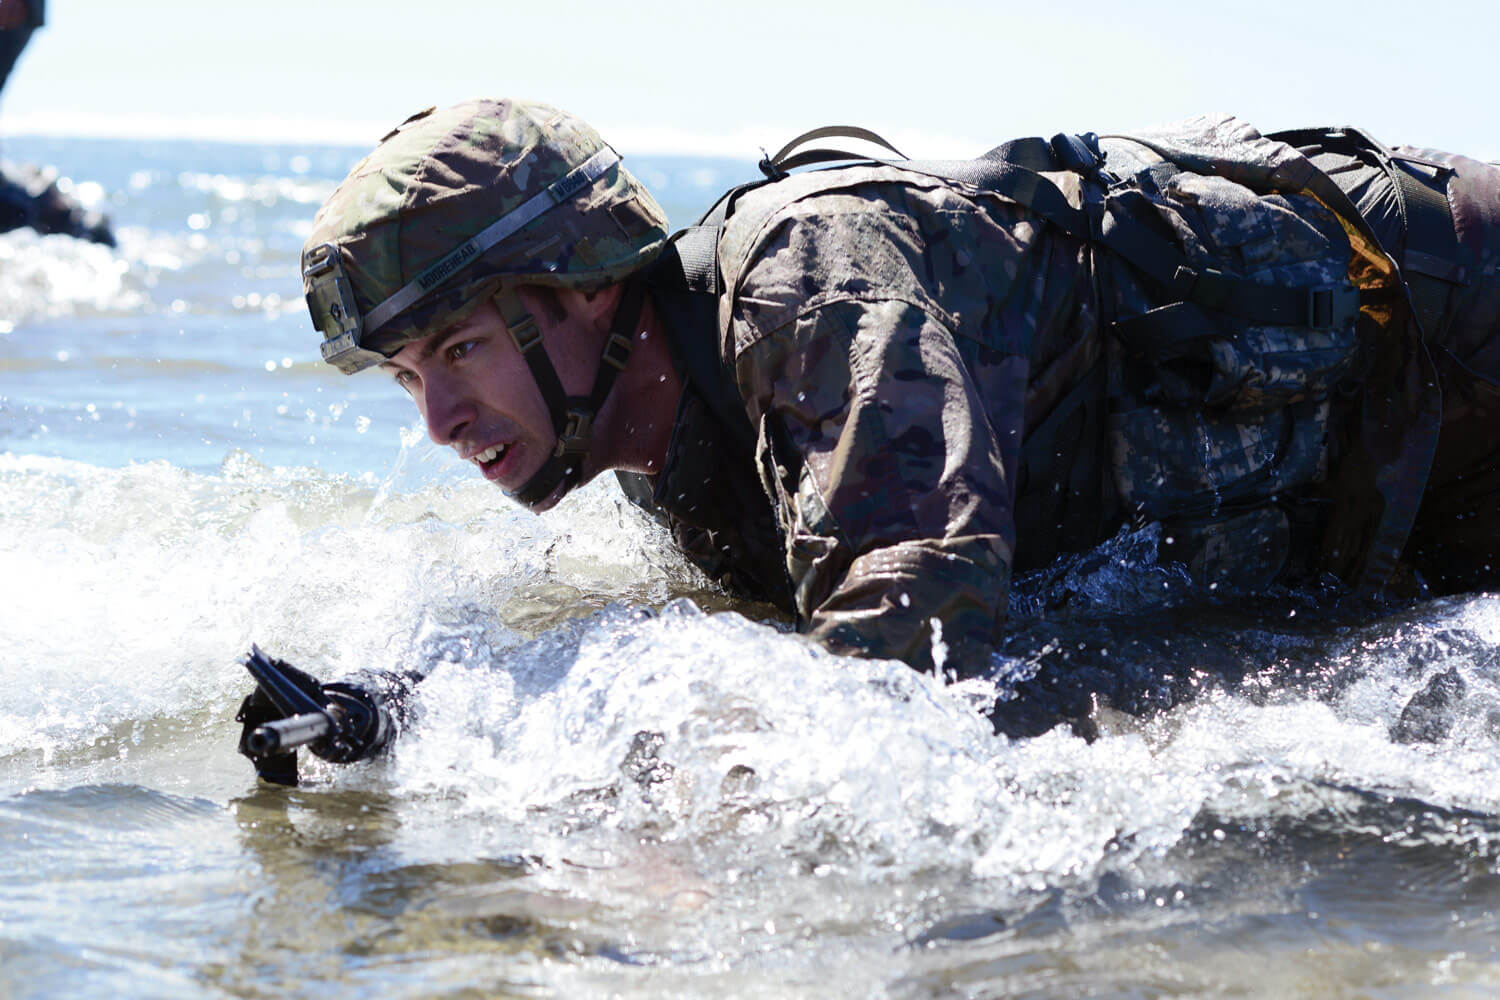 Oregon Army National Guard SGT Dane Moorehead, with B Troop, 1st Squadron, 82nd Cavalry Regiment, 82nd Brigade Troop Command, high-crawls to the shore, through the surf in full battle gear during the Omaha Beach event at the 2017 Oregon Best Warrior Competition held at Camp Rilea, near Warrenton, Oregon. Moorehead is the 2017 Noncommissioned Officer of the Year. Oregon Army National Guard photo by SFC April Davis